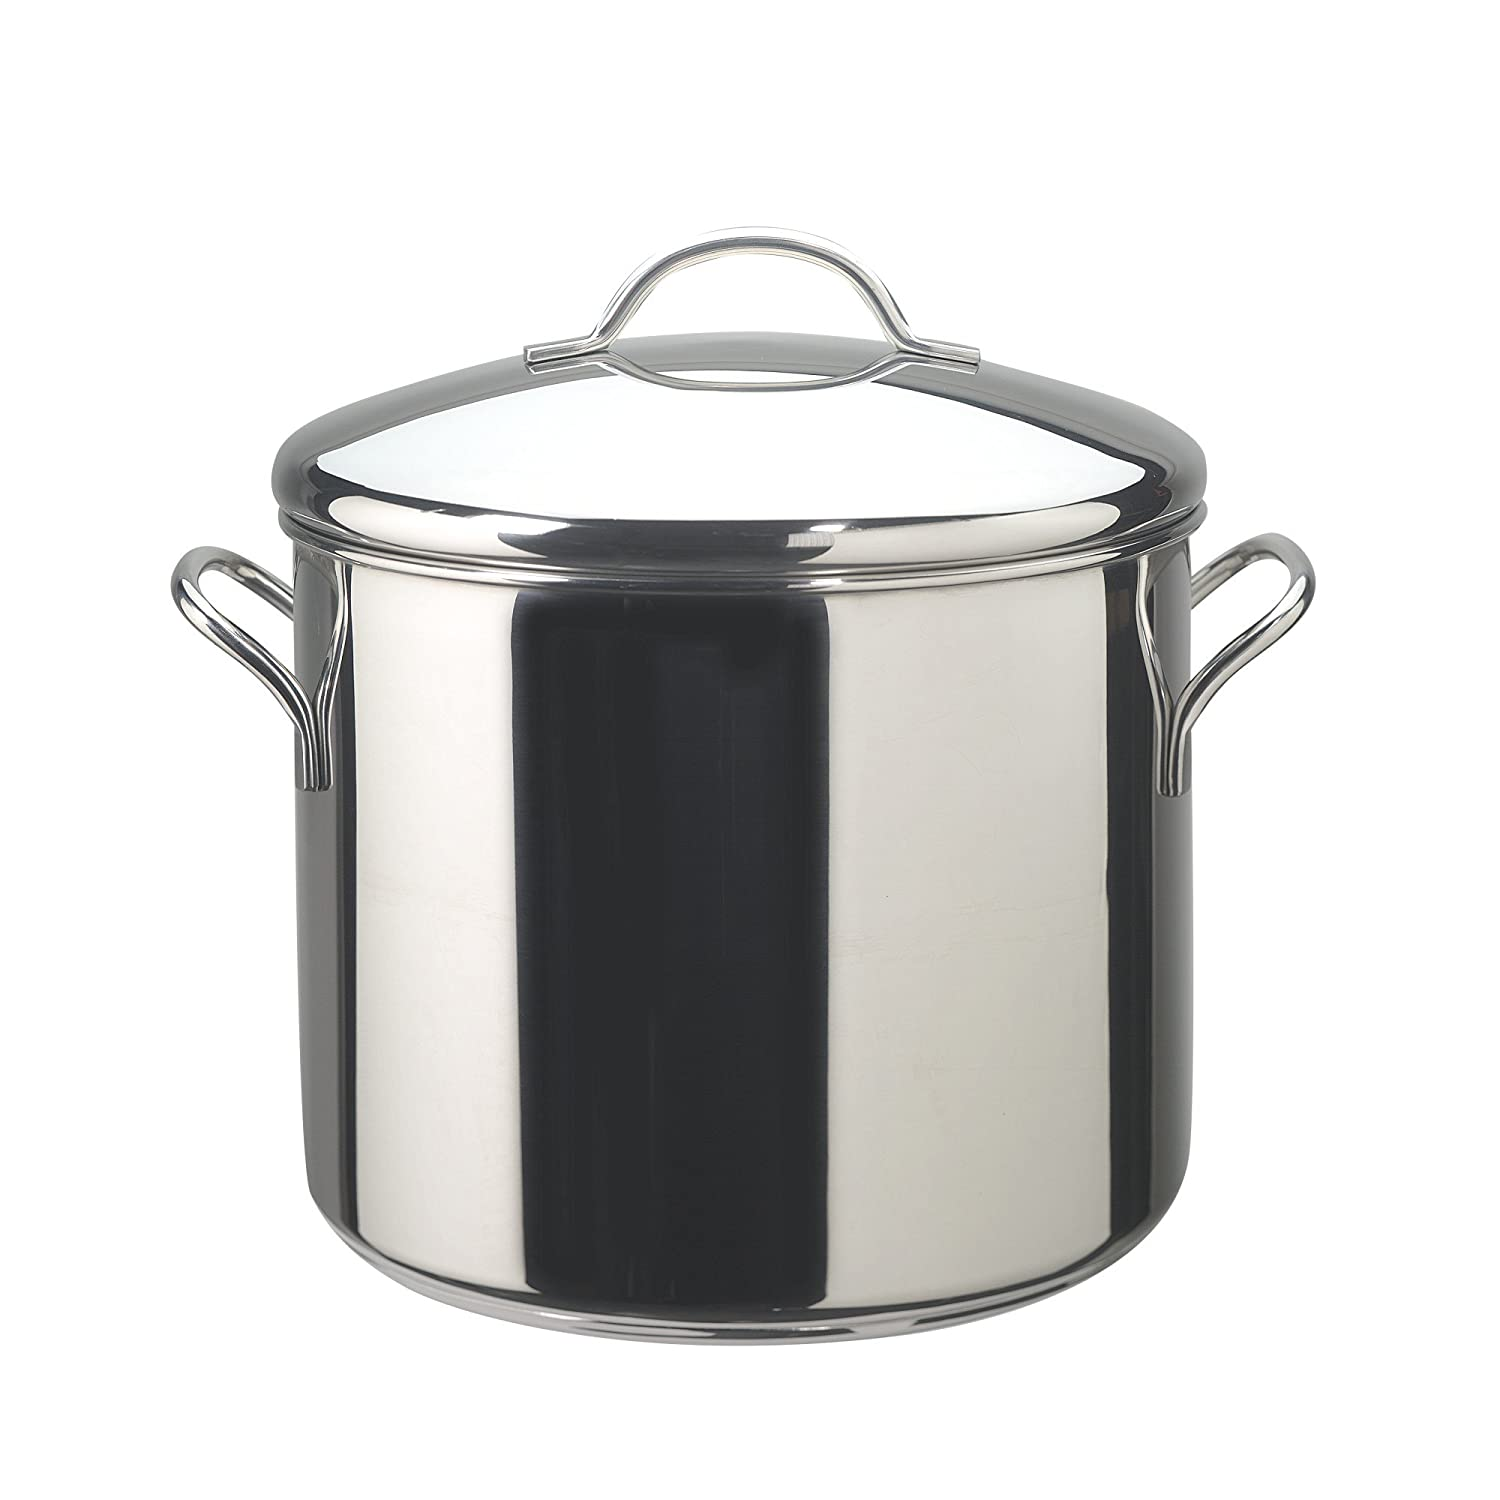 B00004RFK7 Farberware 50008 Classic Stainless Steel Stock Pot/Stockpot with Lid - 12 Quart, Silver 71ovLUxY20L